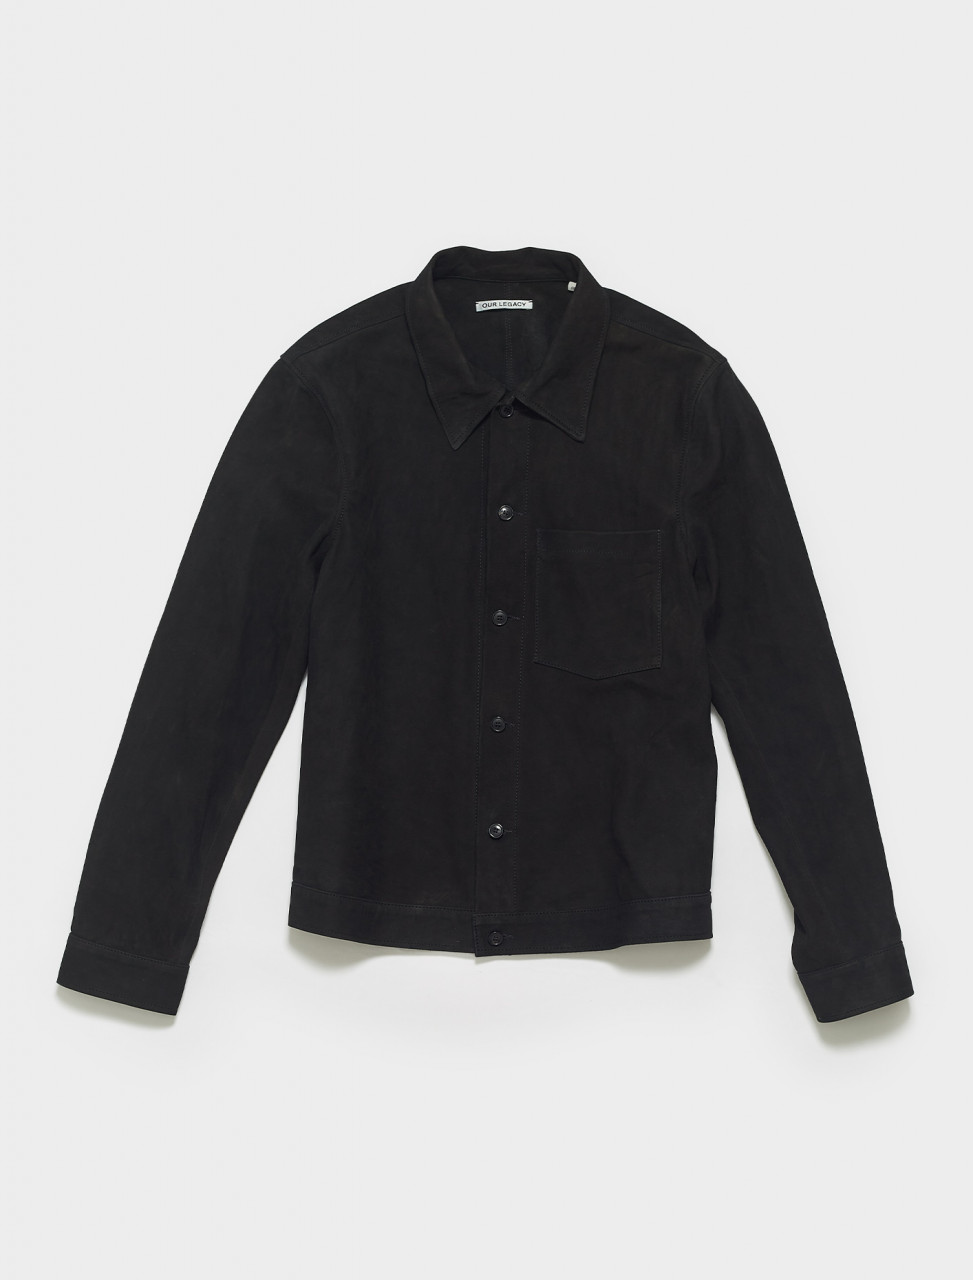 MR199NB OUR LEGACY REINCARNATION SHIRT IN BLACK SUEDE